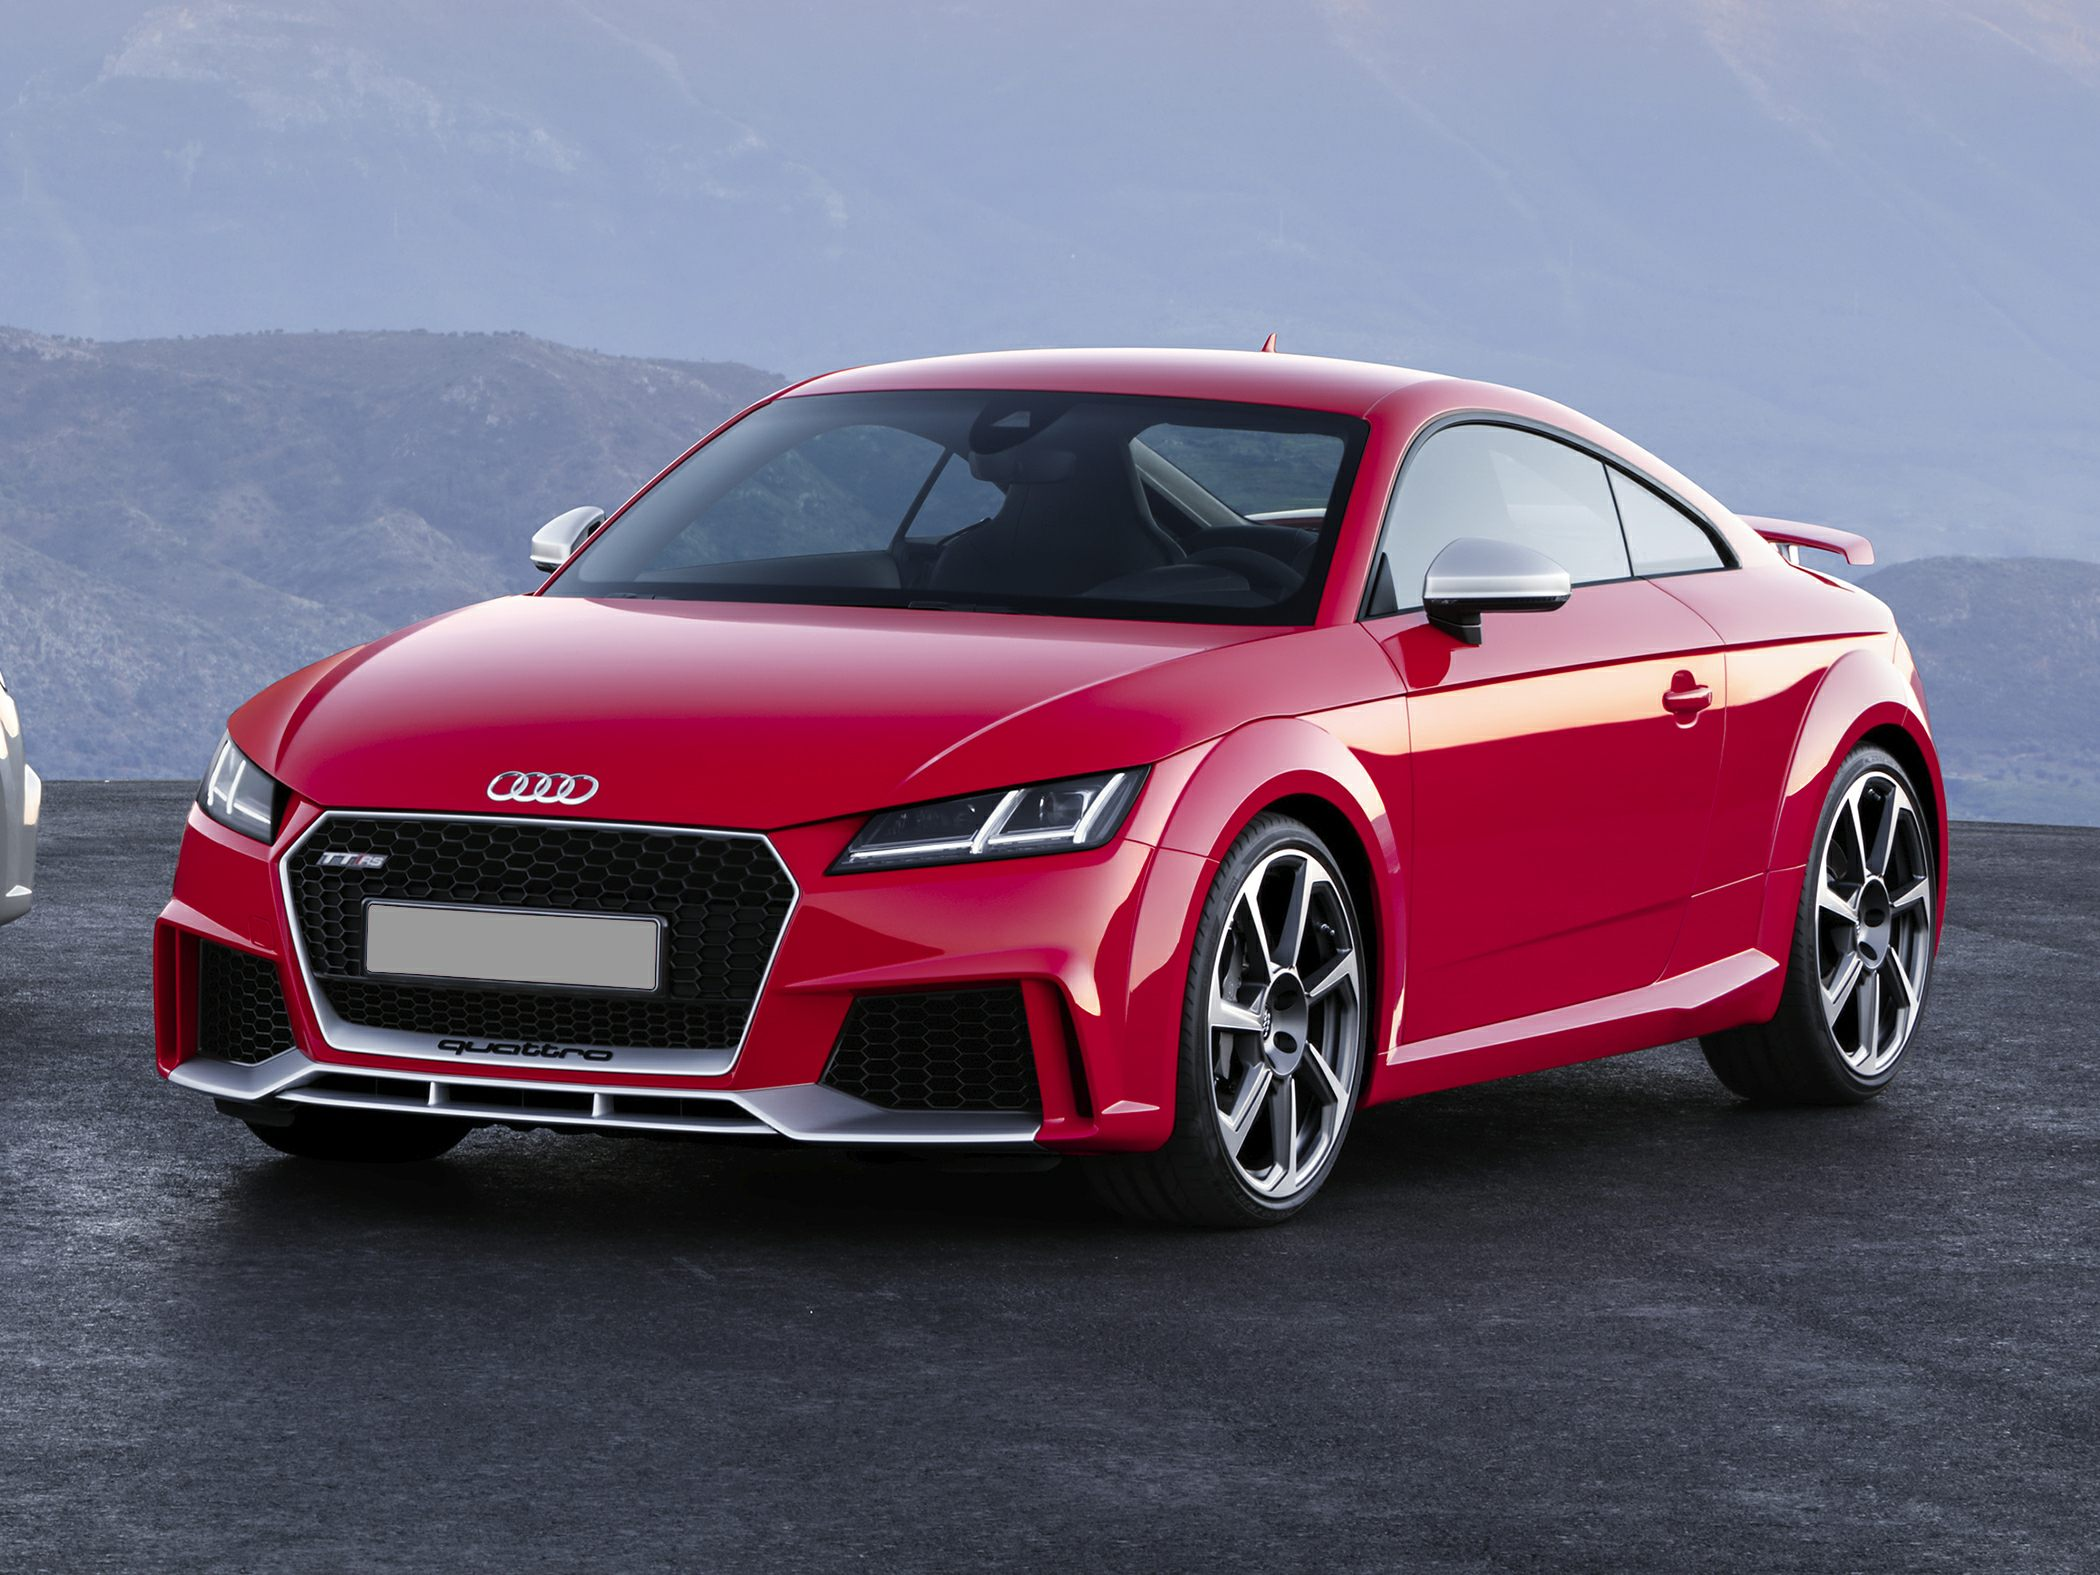 2018 audi tt rs deals prices incentives leases overview carsdirect. Black Bedroom Furniture Sets. Home Design Ideas